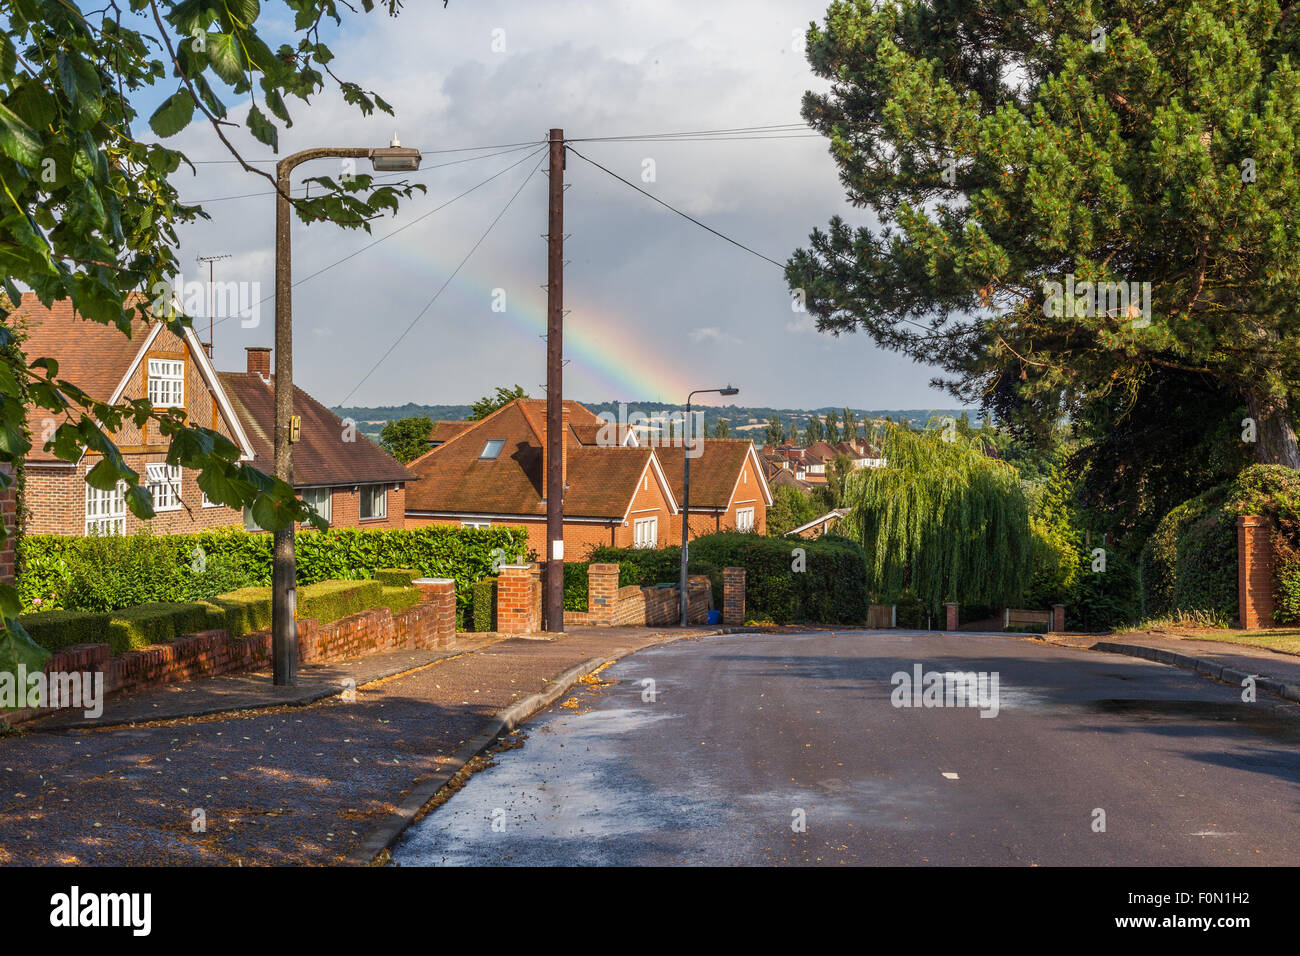 Scene of a residential area after the rain, with rainbow on the far distance, Loughton, Essex. England, UK - Stock Image